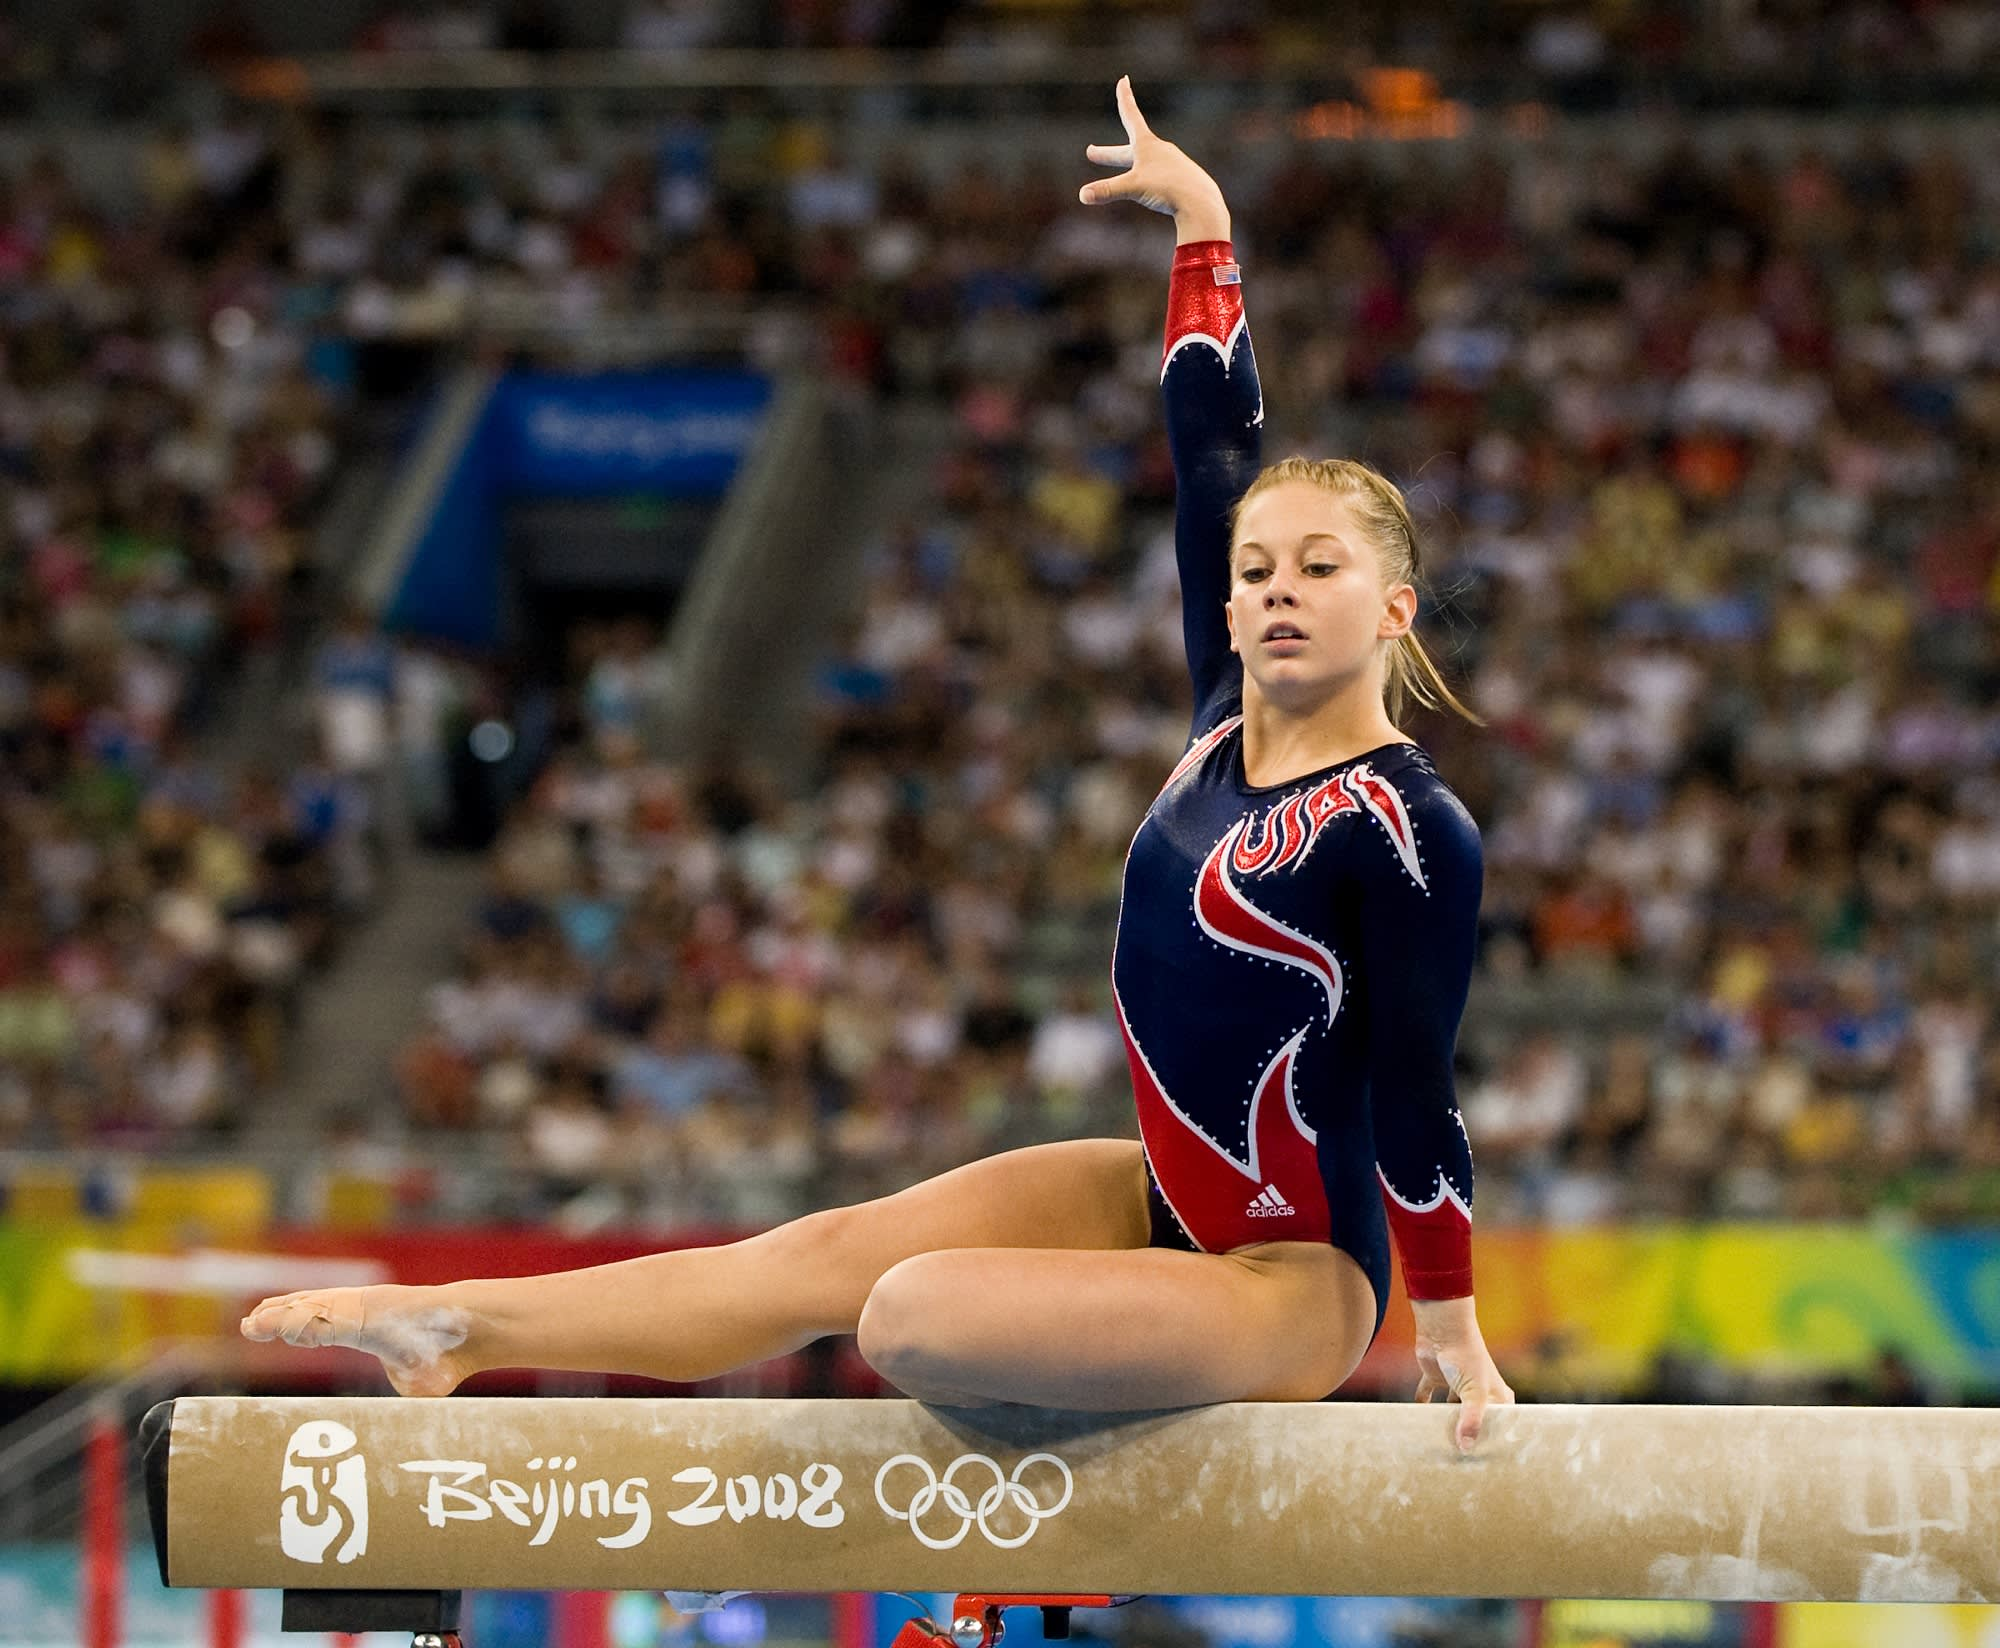 Discussion on this topic: Rosanna Roces (b. 1972), shawn-johnson-4-olympic-medals-in-gymnastics/